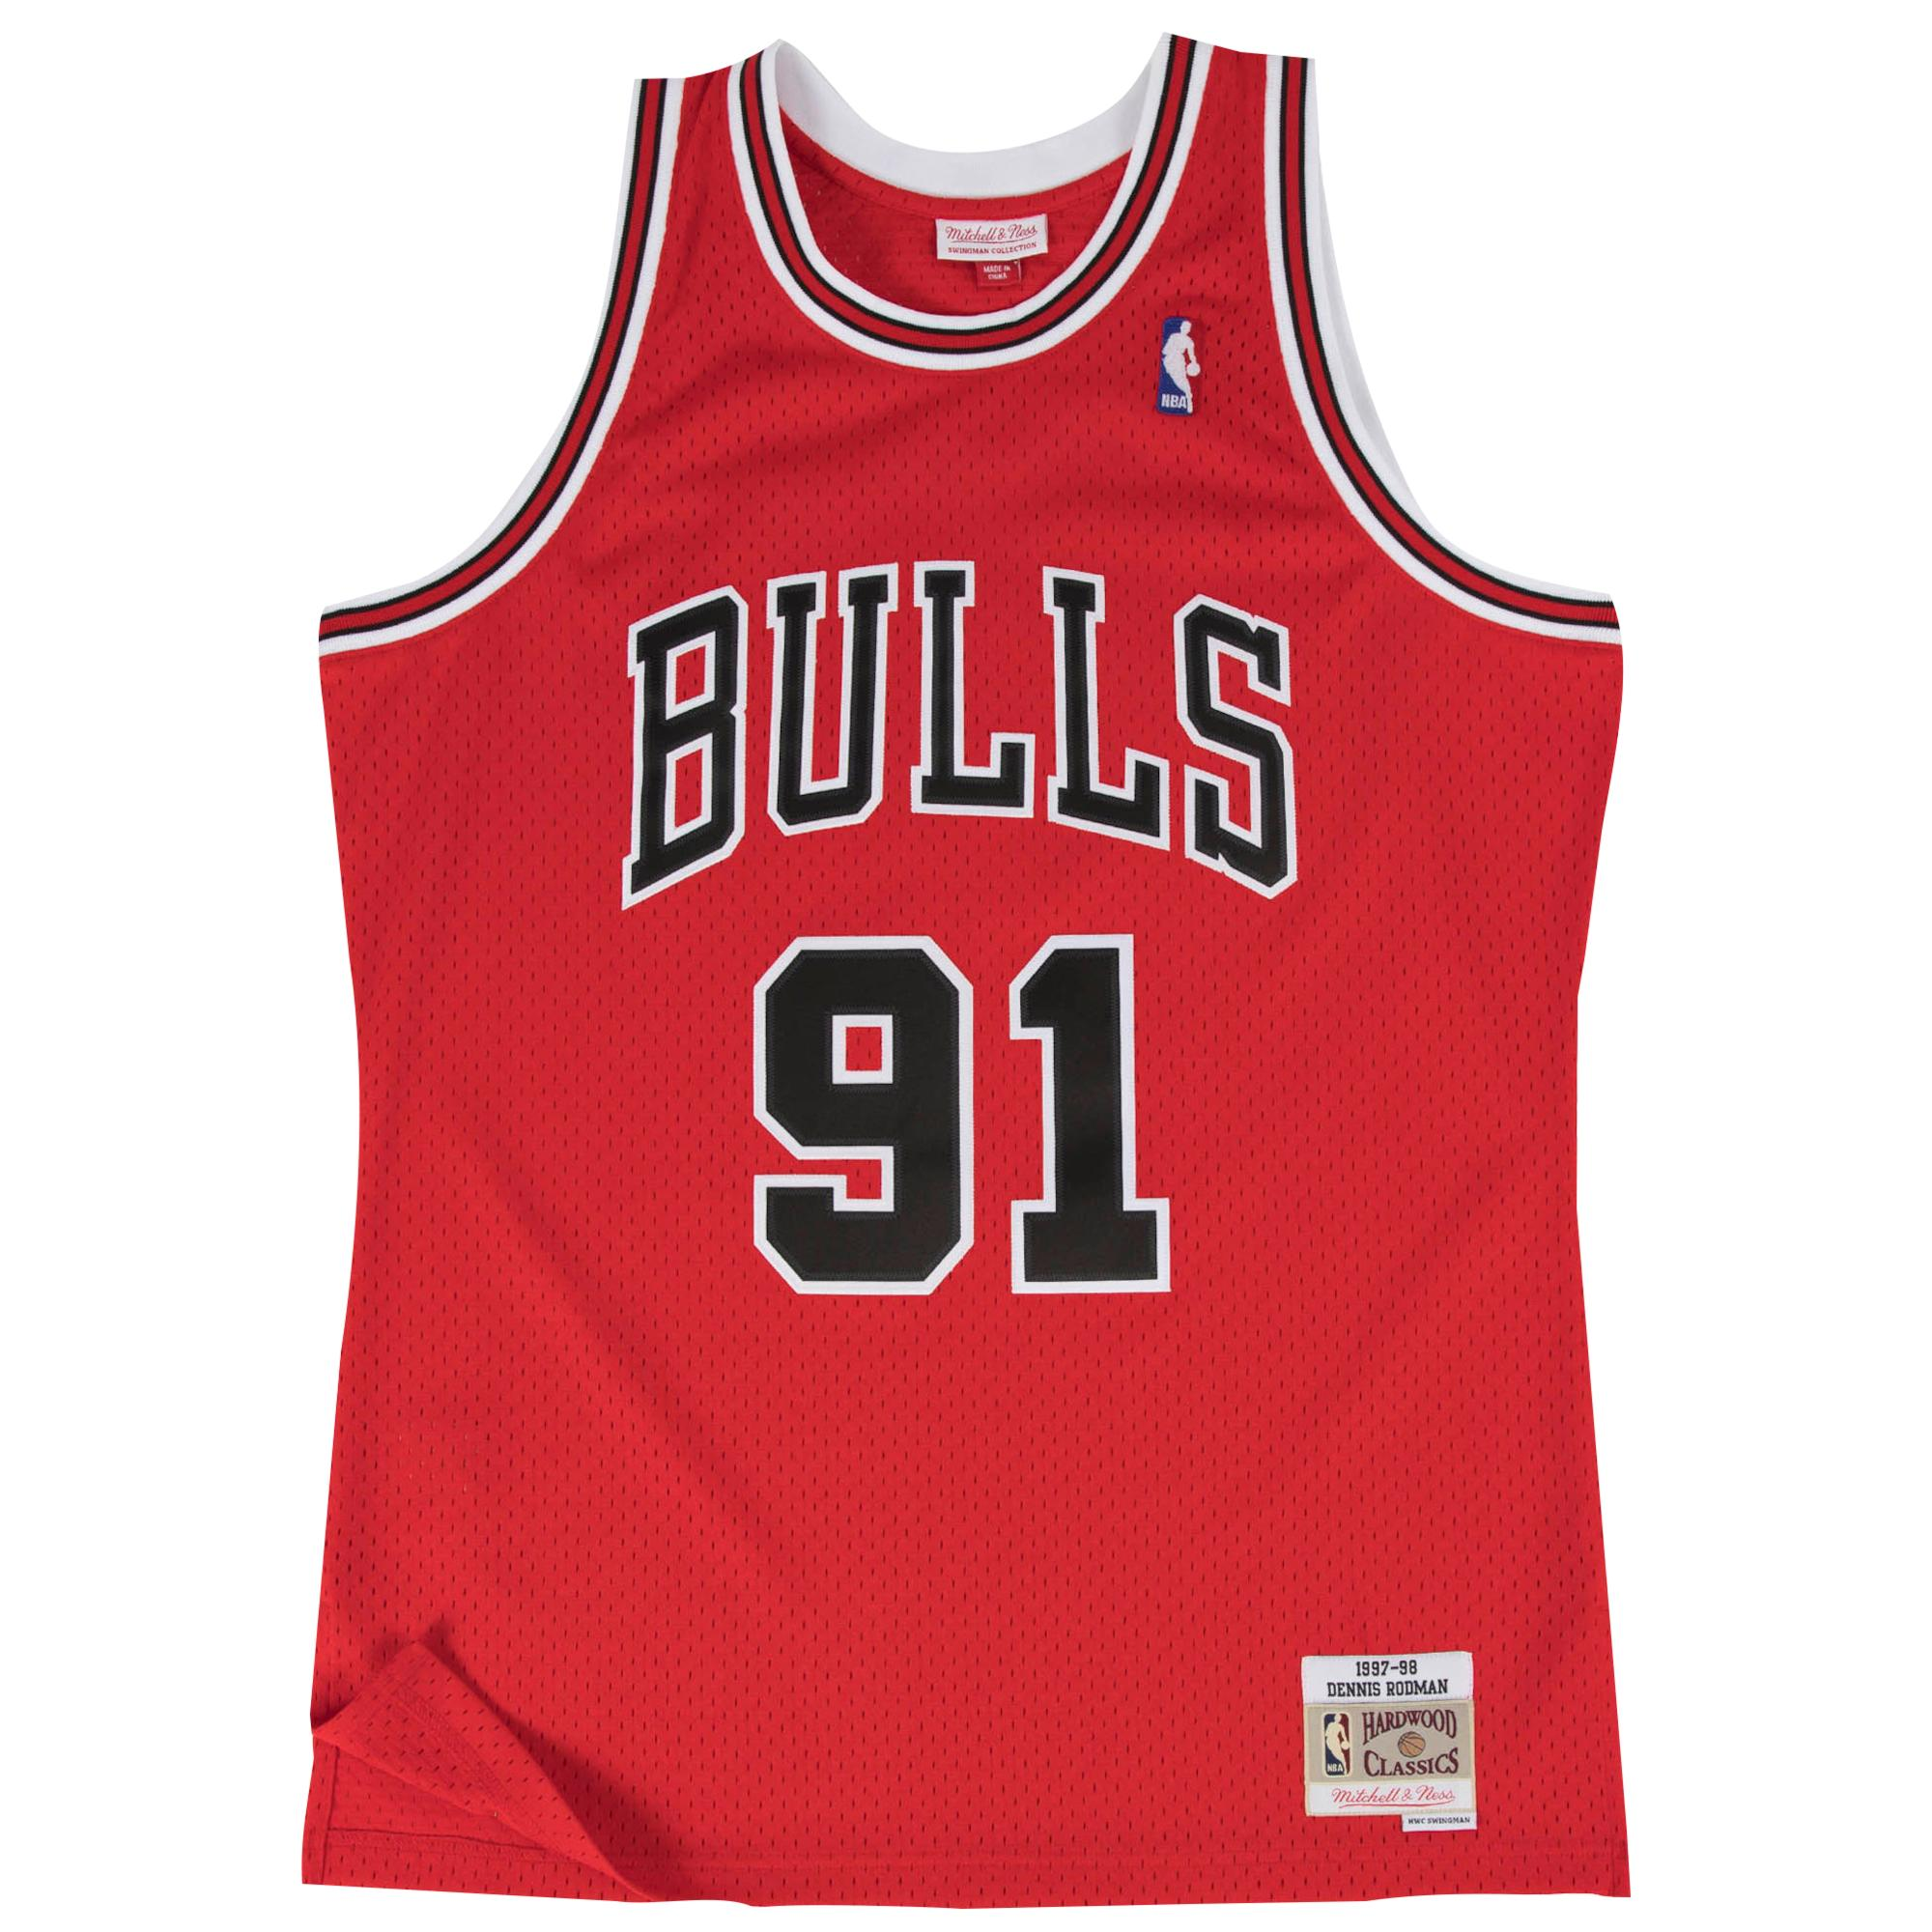 competitive price a6708 84f5d Men's Red Nba Swingman Basketball Jersey